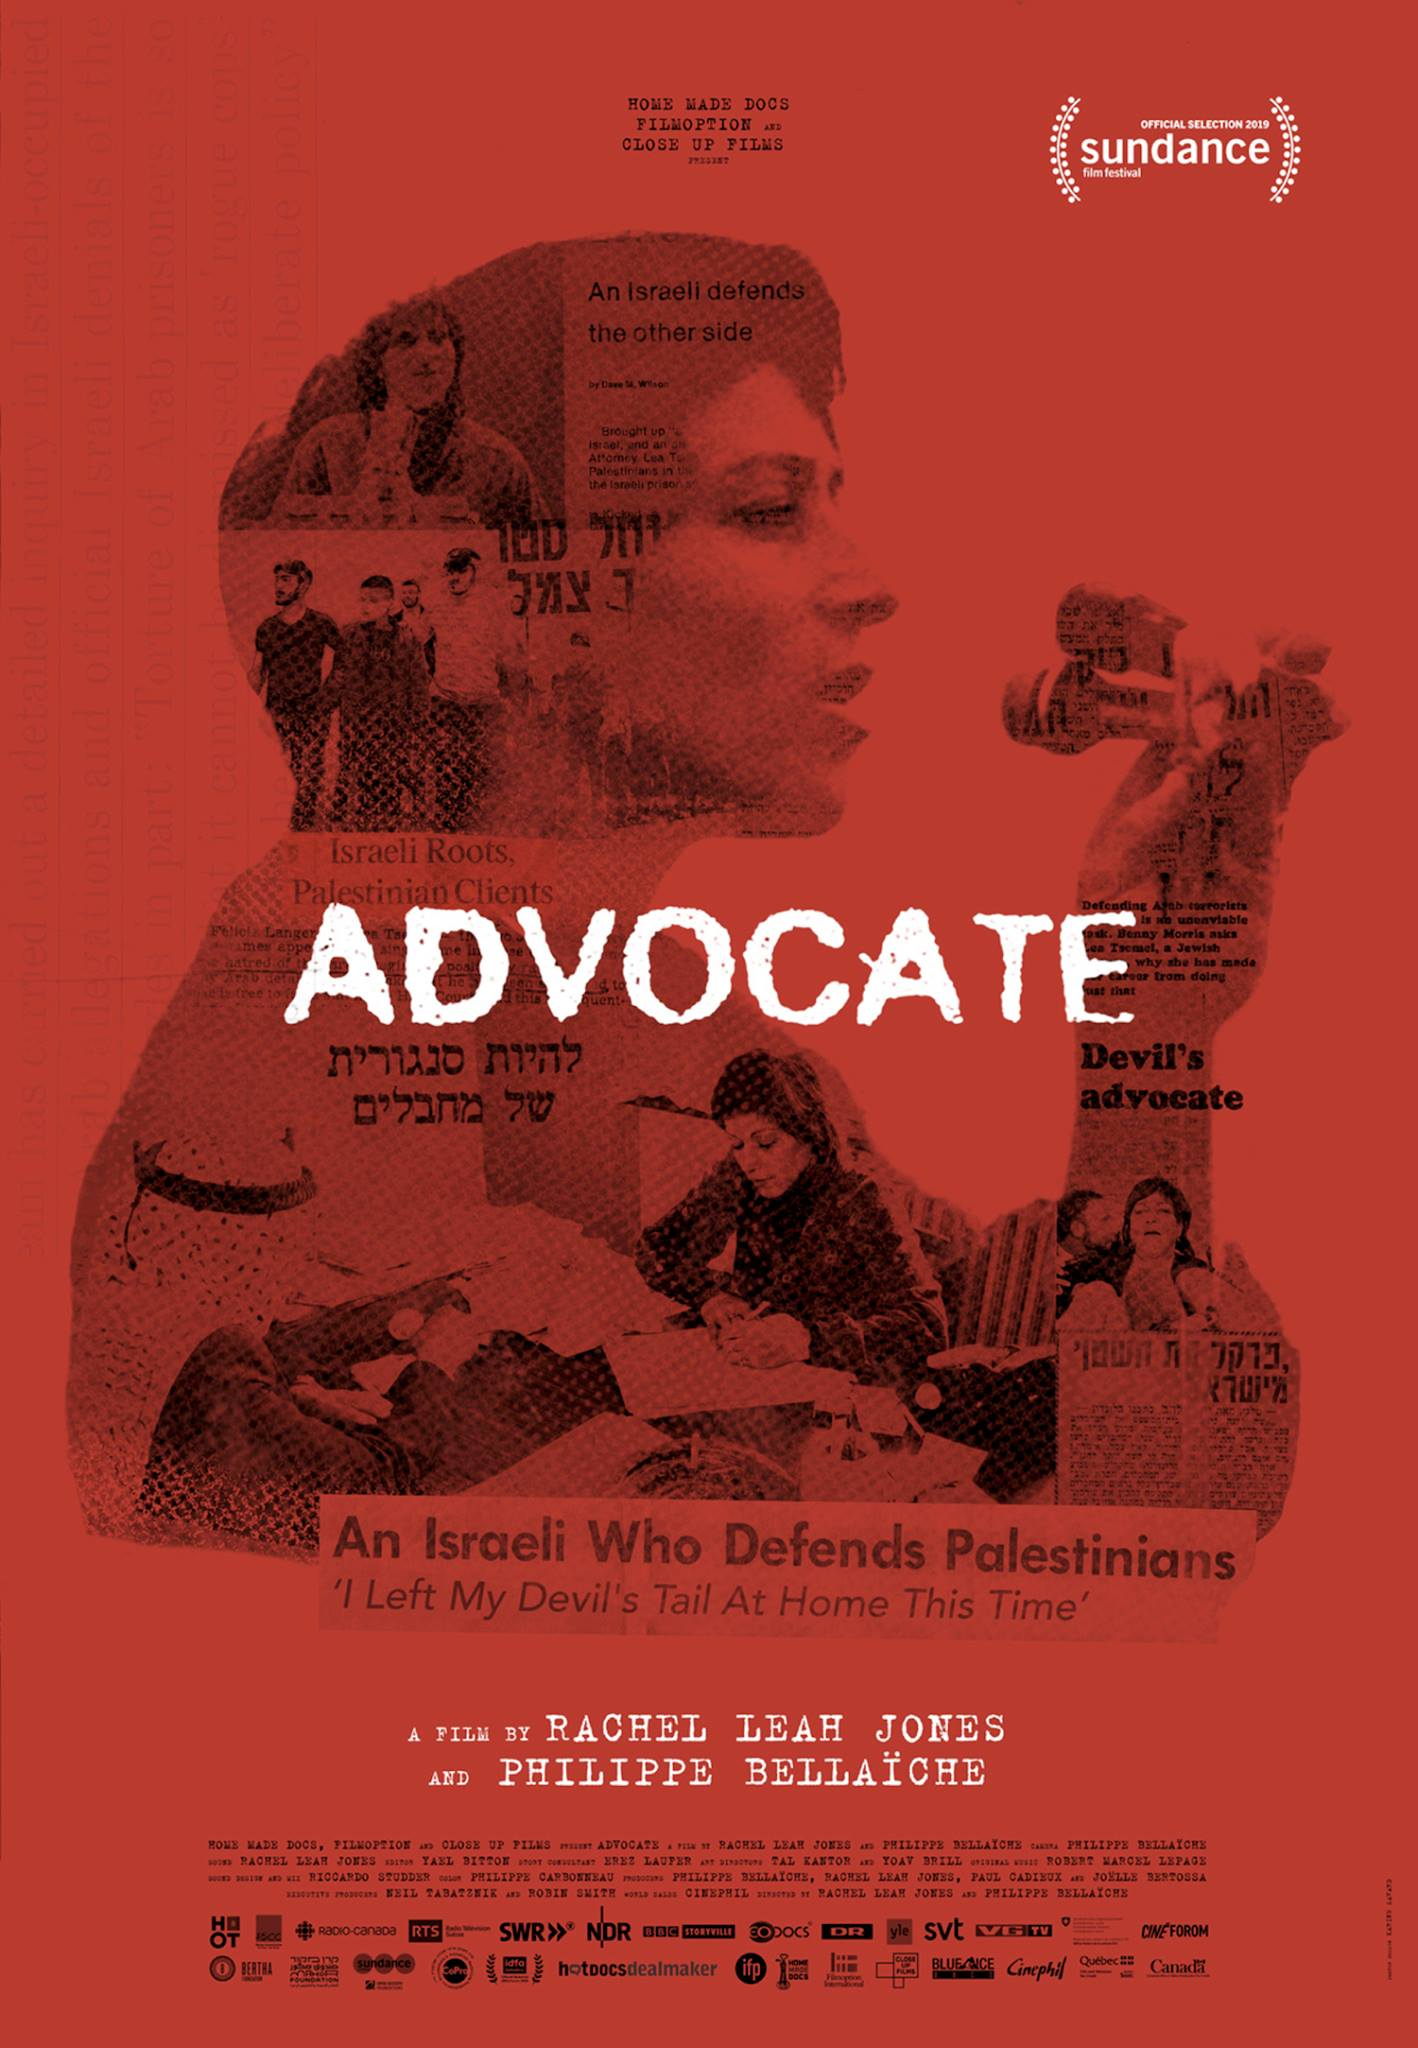 ADVOCATE Release Poster